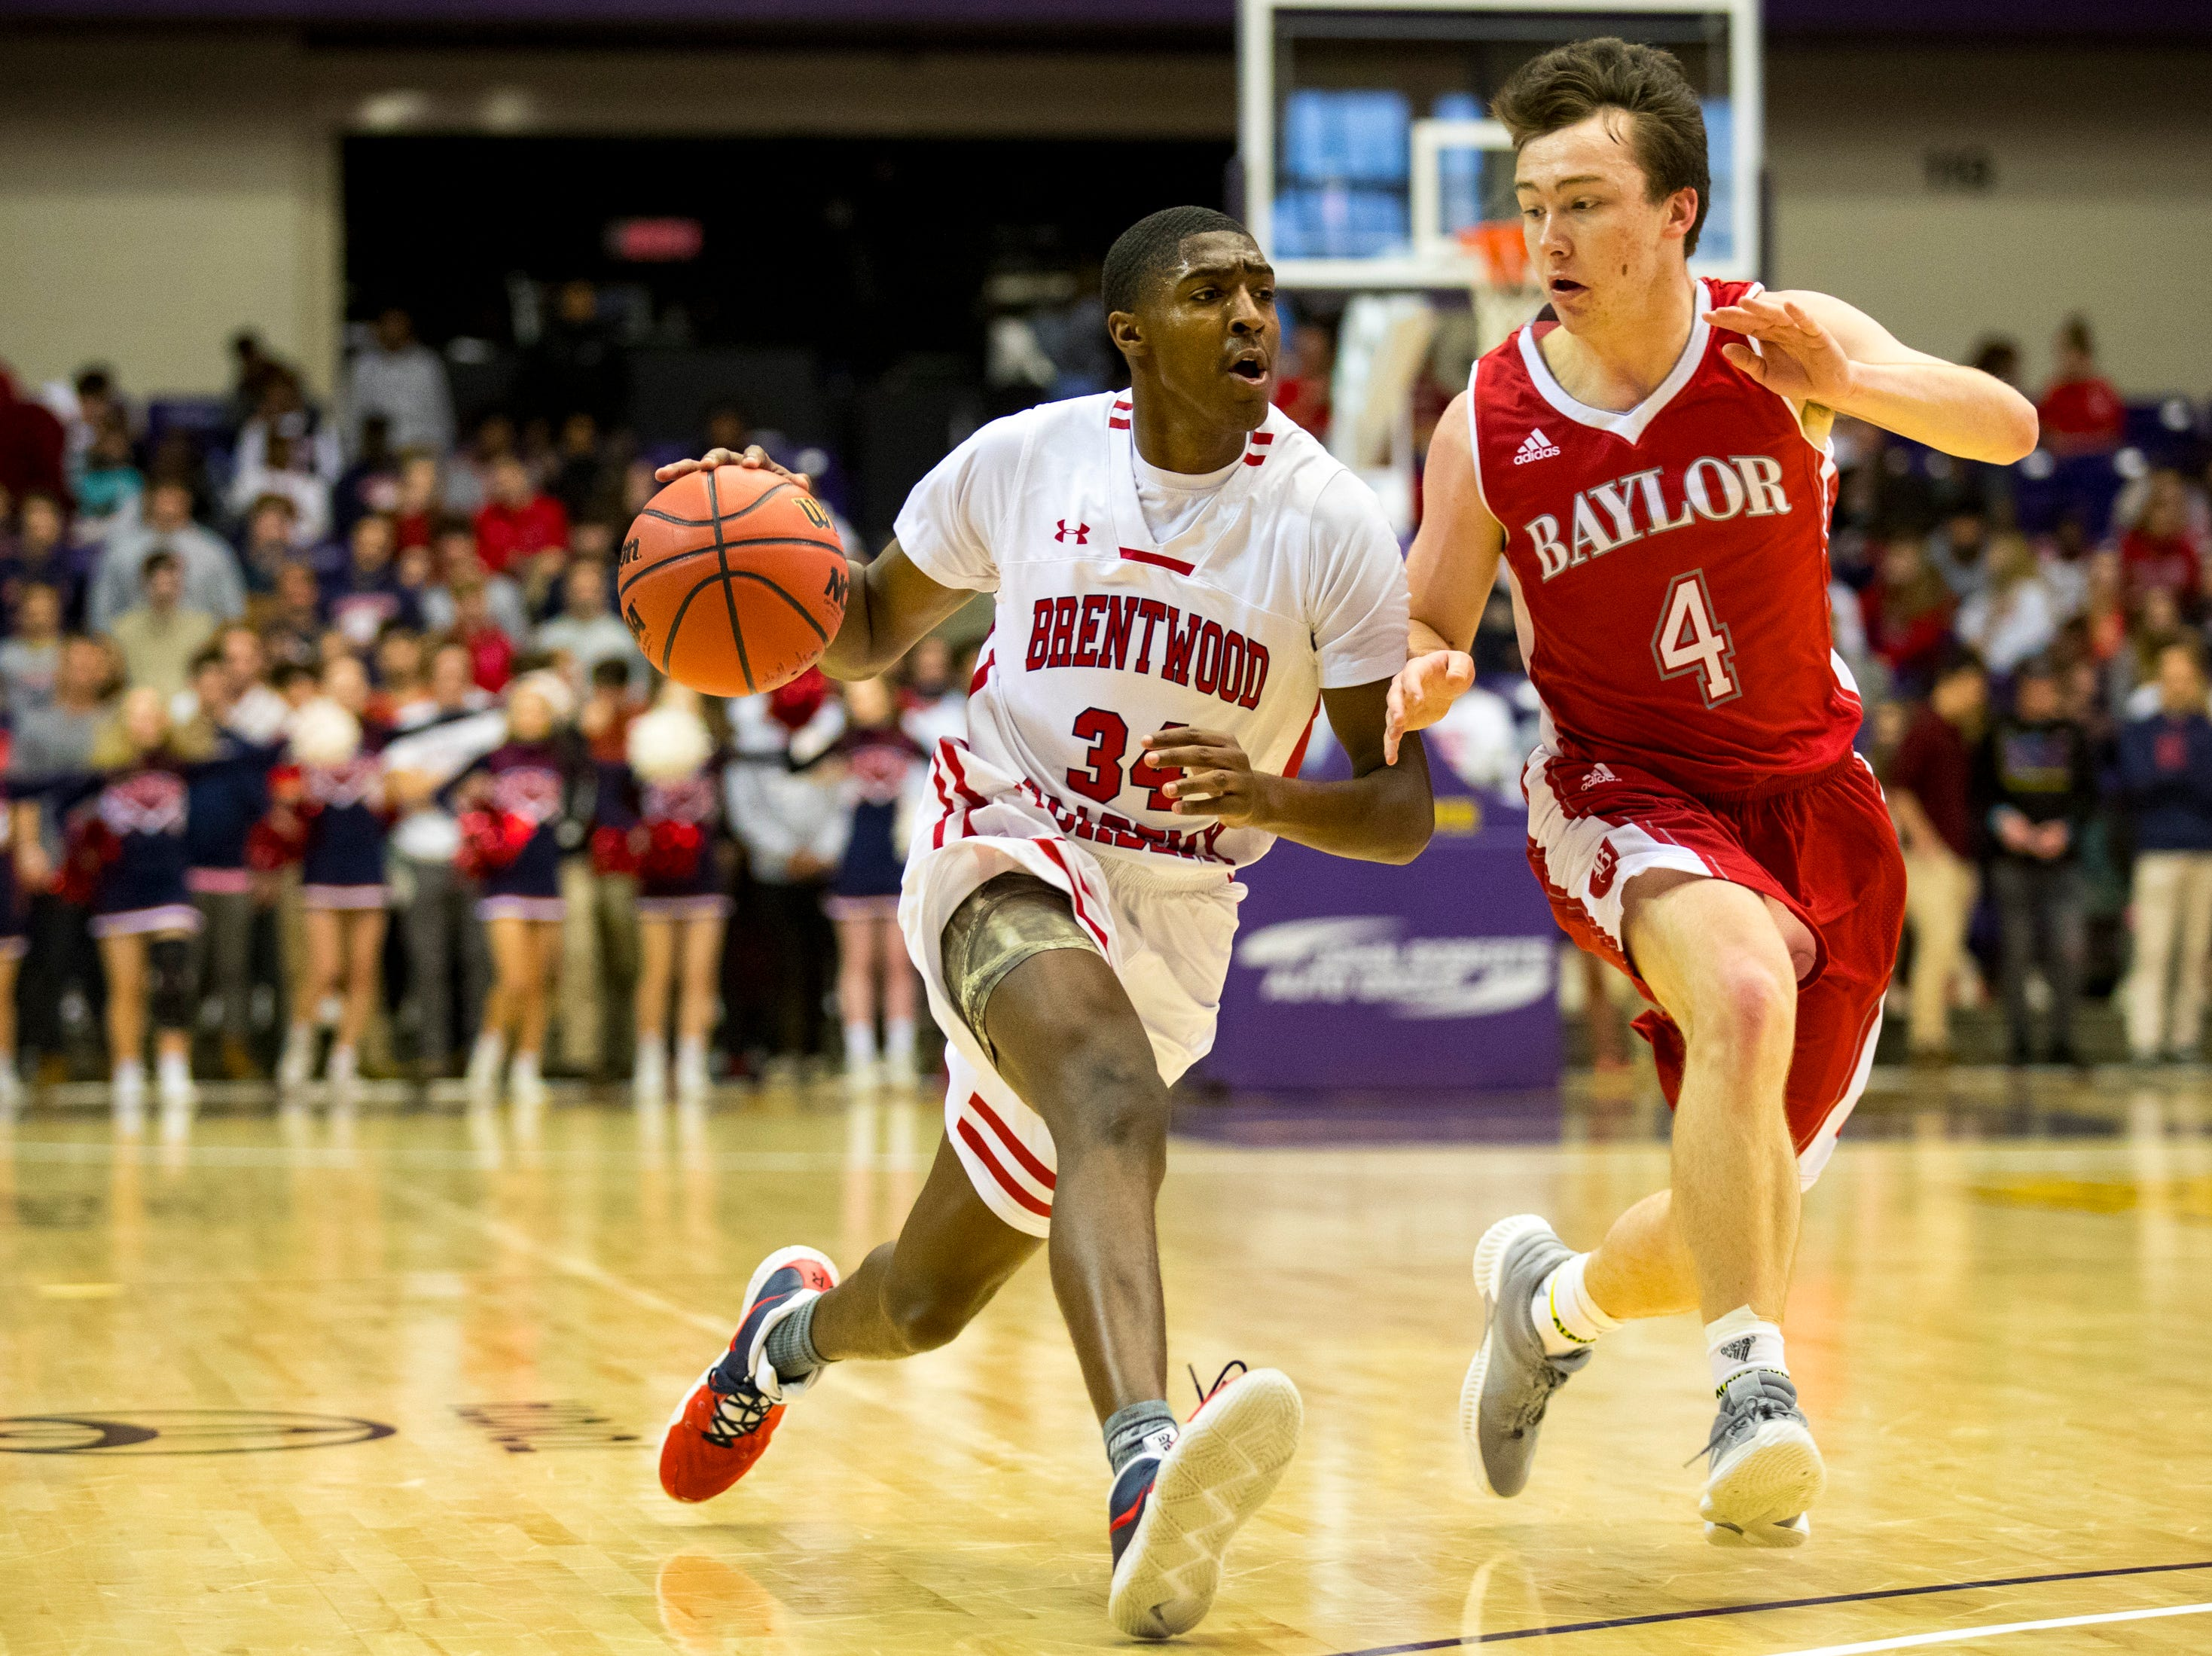 Brentwood Academy's Randy Brady (34) tries to get around Baylor's Blake Pruitt (4) during Brentwood Academy's game against Baylor in the semifinal round of the TSSAA Division II Class AA State Championships at Lipscomb University's Allen Arena in Nashville on Thursday, Feb. 28, 2019.